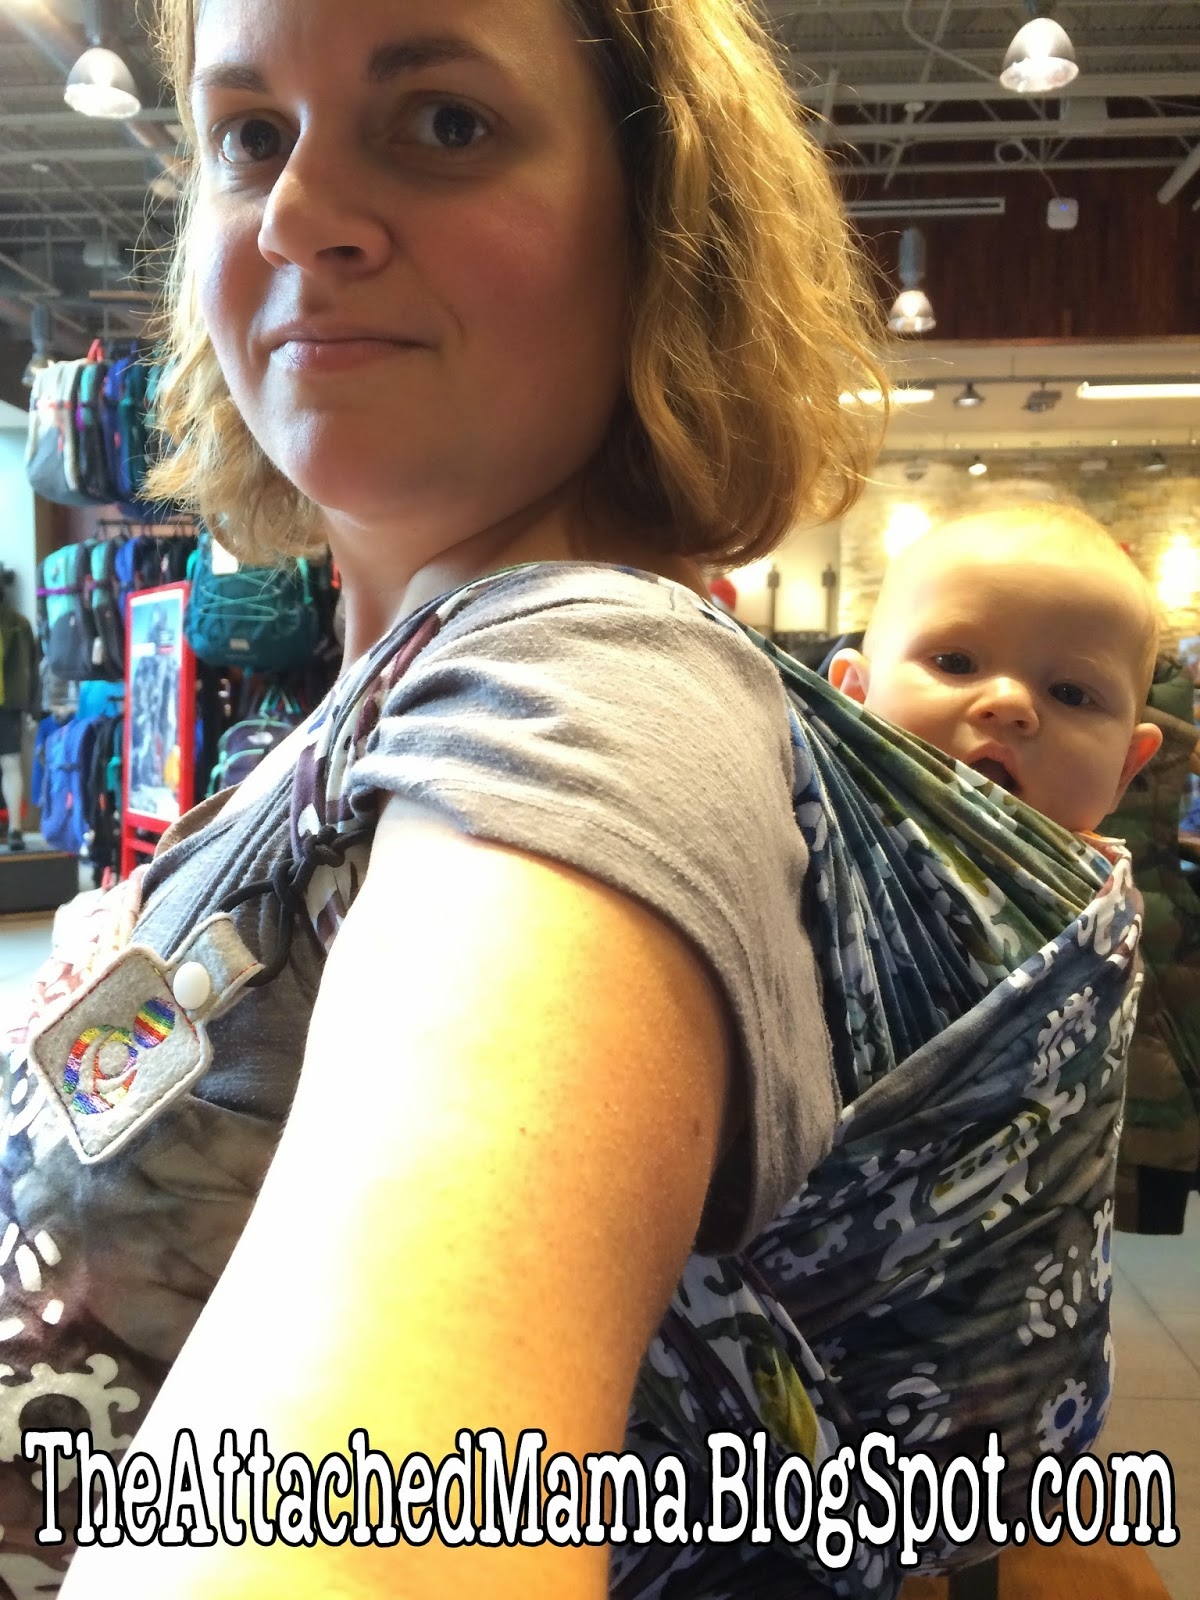 eefc117781e My understanding is that any back carry with more than one pass across the  baby is safe with this carrier